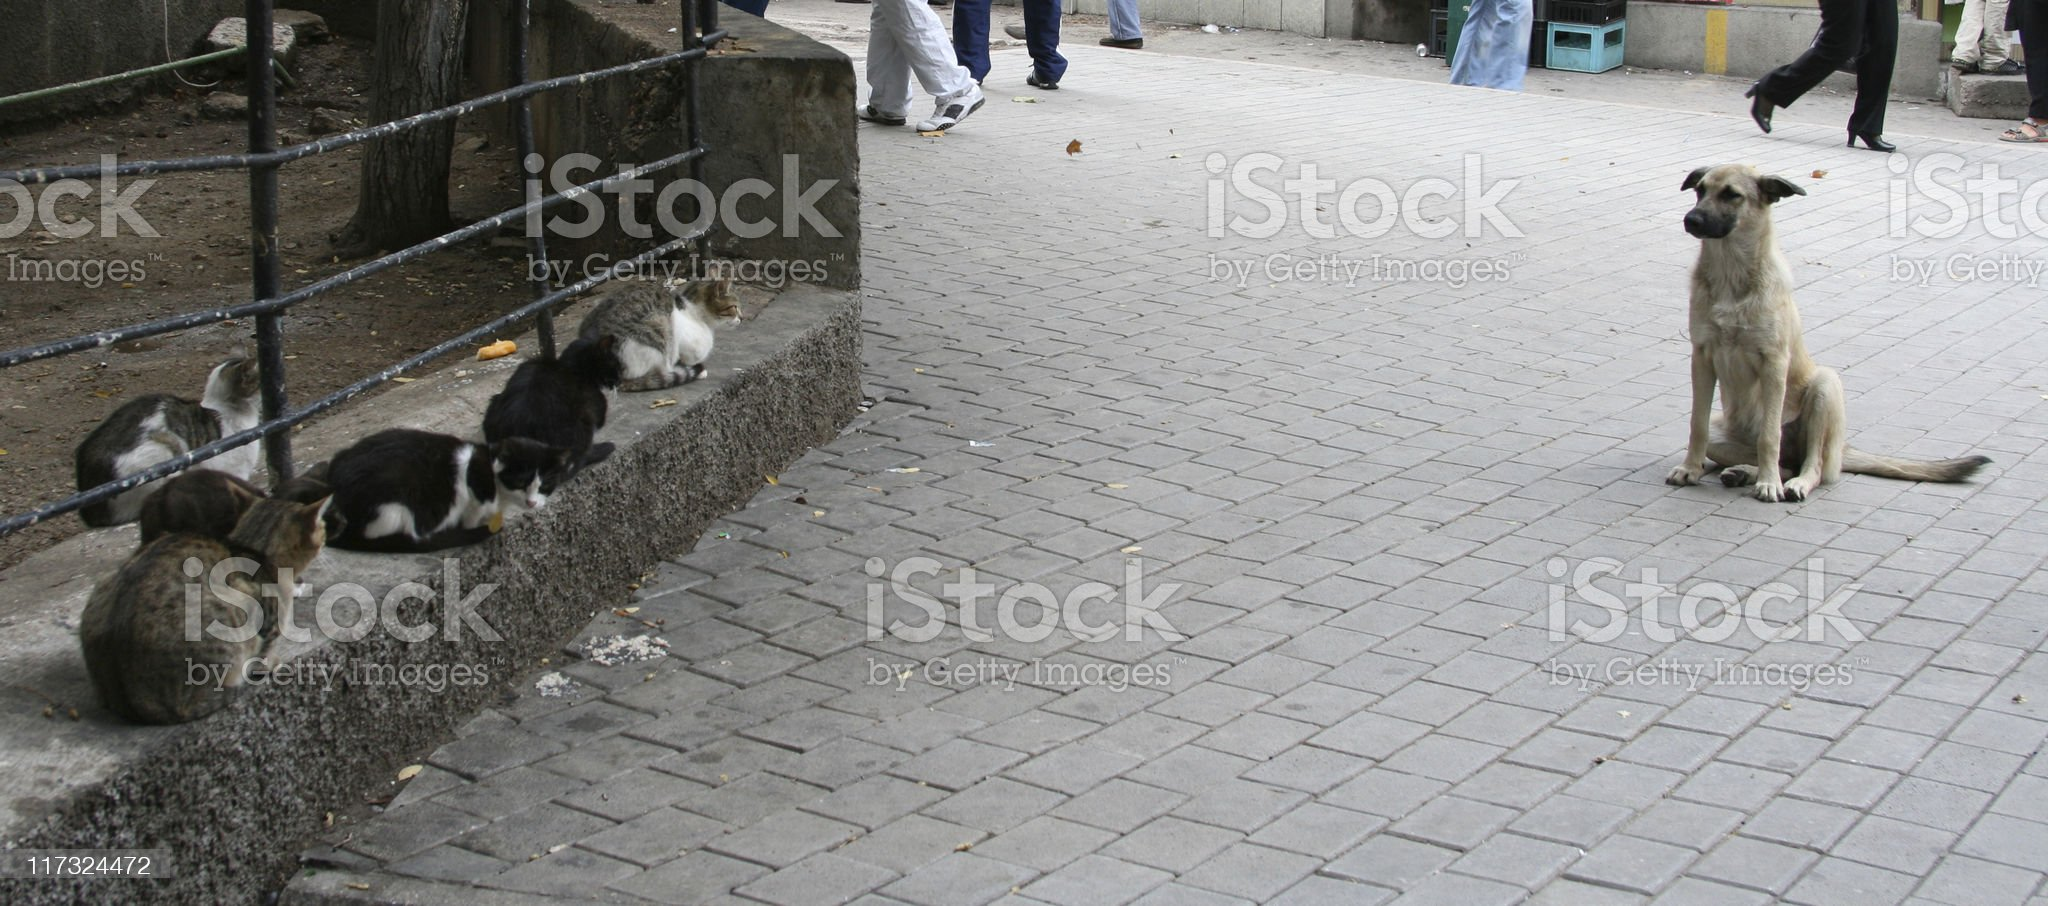 dog and cats royalty-free stock photo